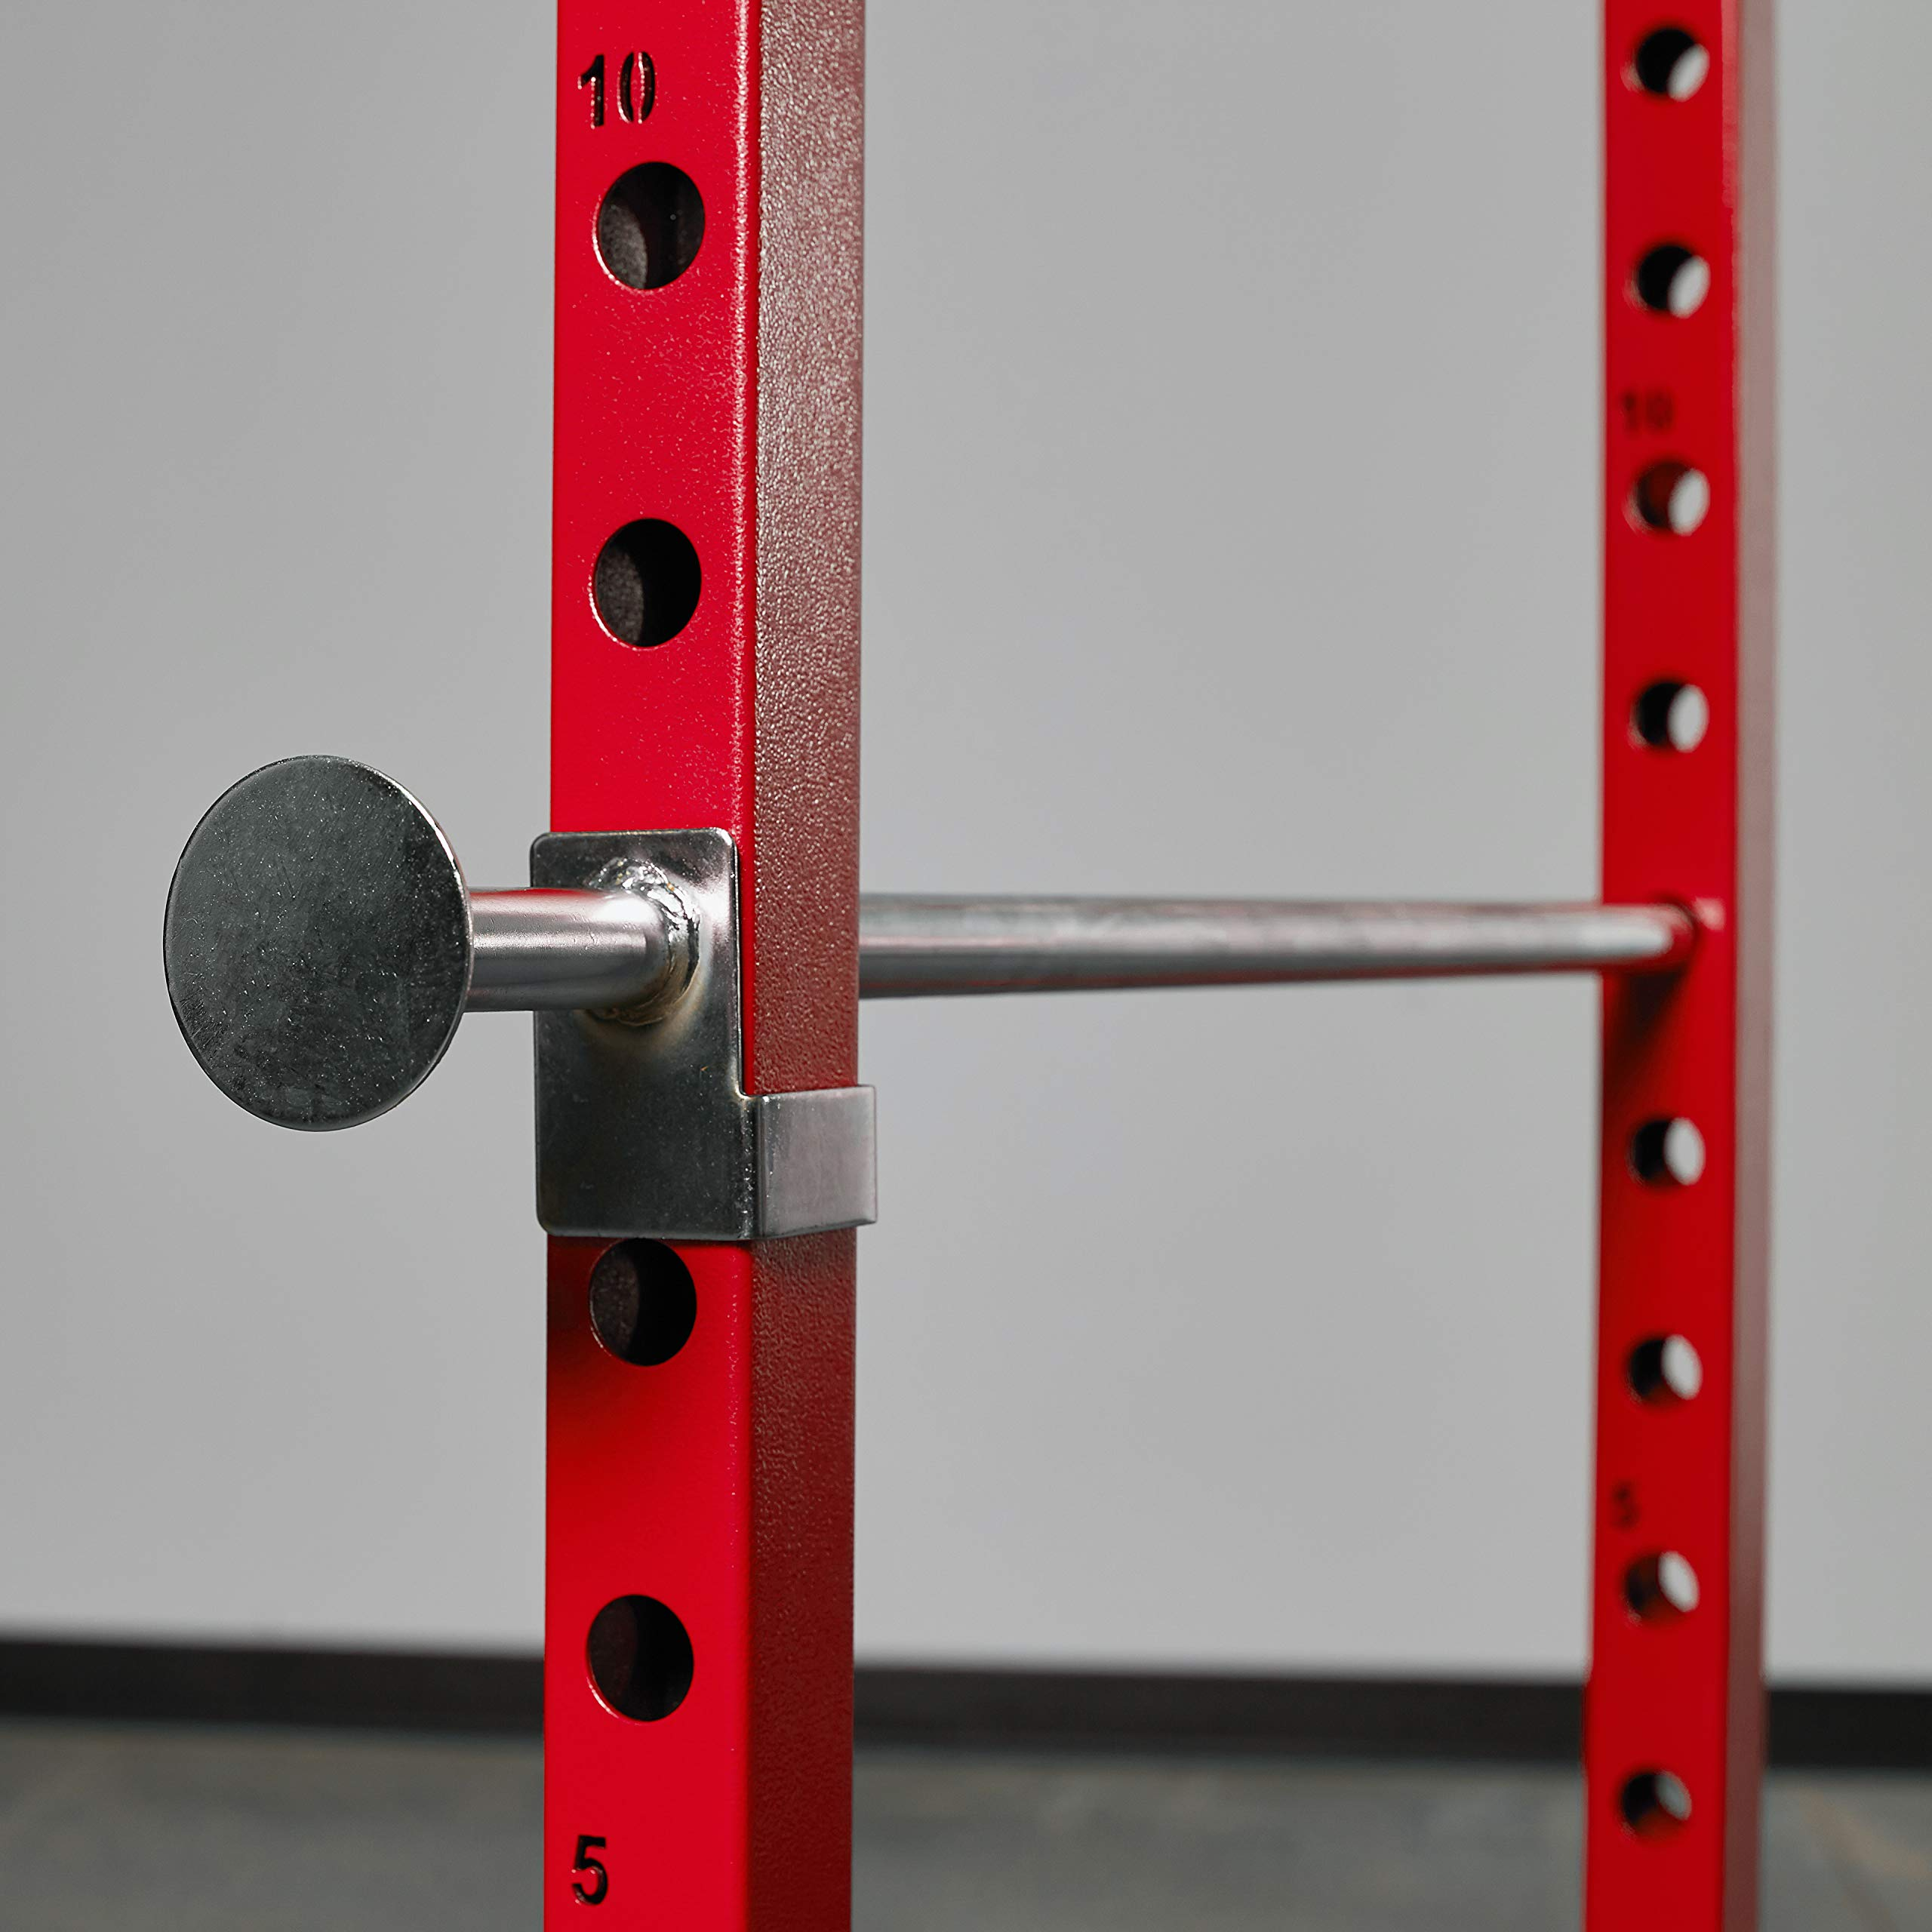 Rep PR-1100 Power Rack - 1,000 lbs Rated Lifting Cage for Weight Training (Red Power Rack, No Bench) by Rep Fitness (Image #3)